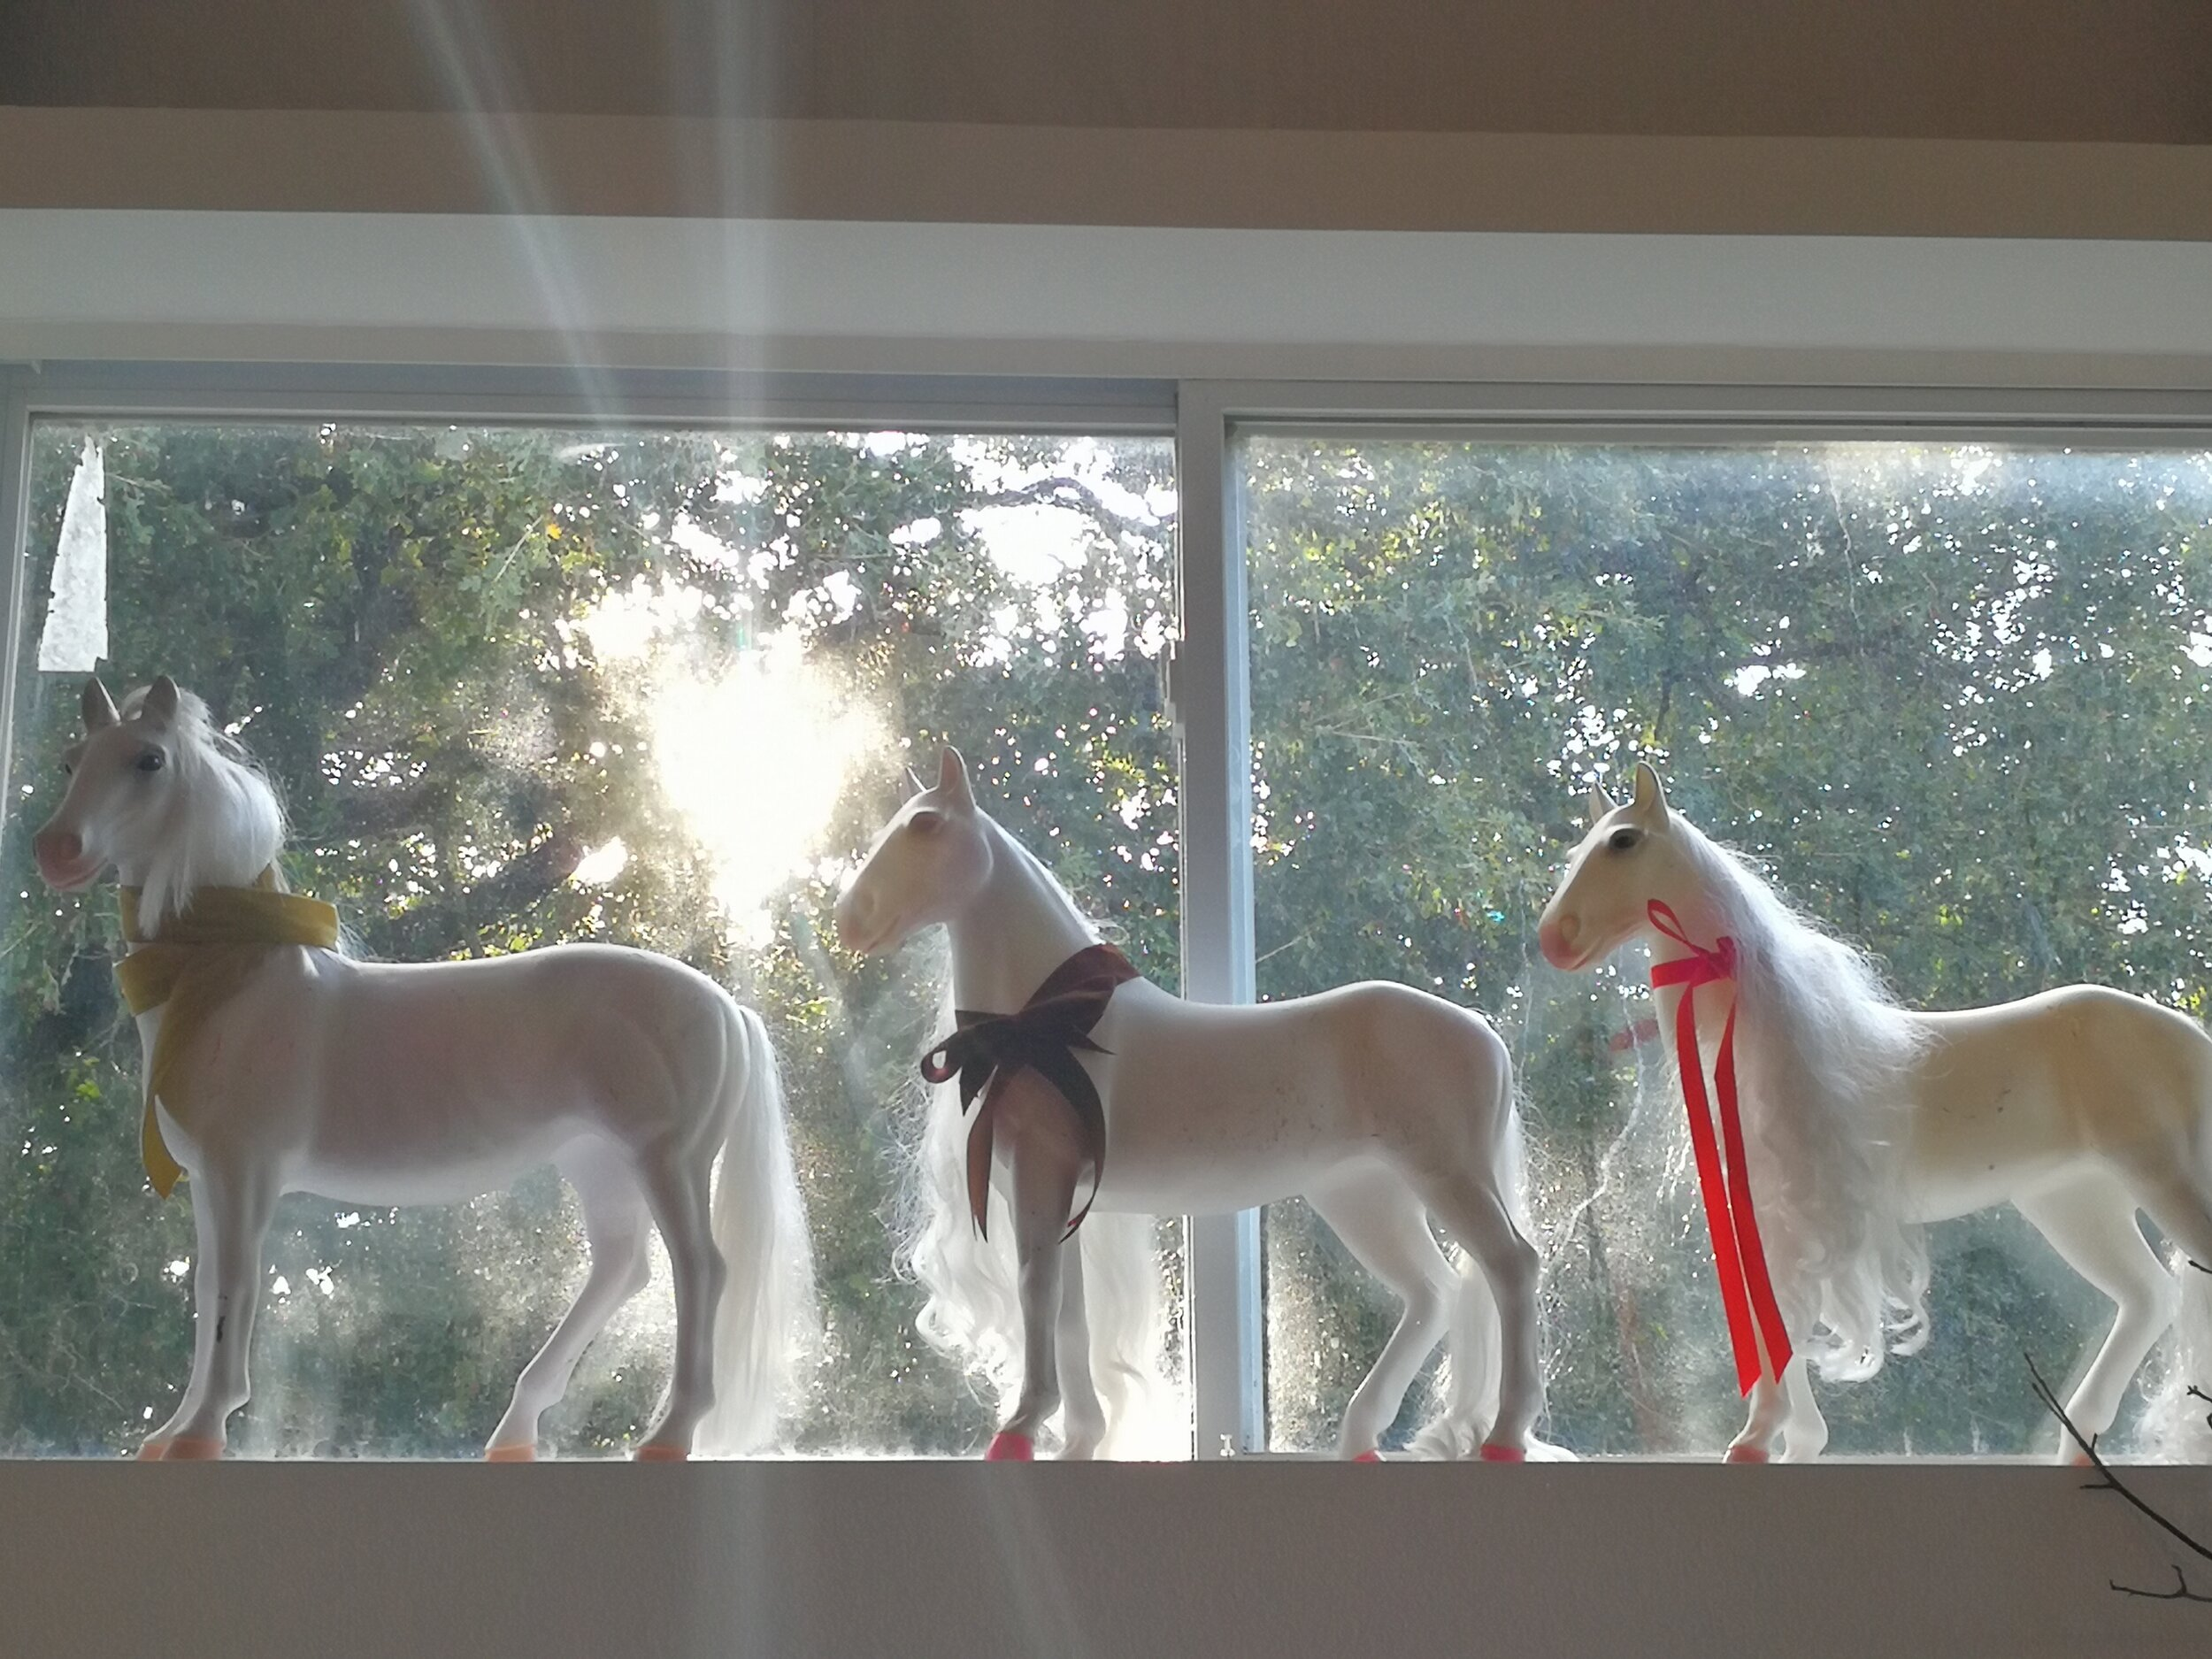 These are Piper's 3 favorite horses. We decided to give them velvet ribbons for autumn. They are L to R...Zeke, Starfire, and Lily. Starfire is Piper's favorite. She says Zeke and Lily are older and won't let Starfire play with them. Poor Starfire.